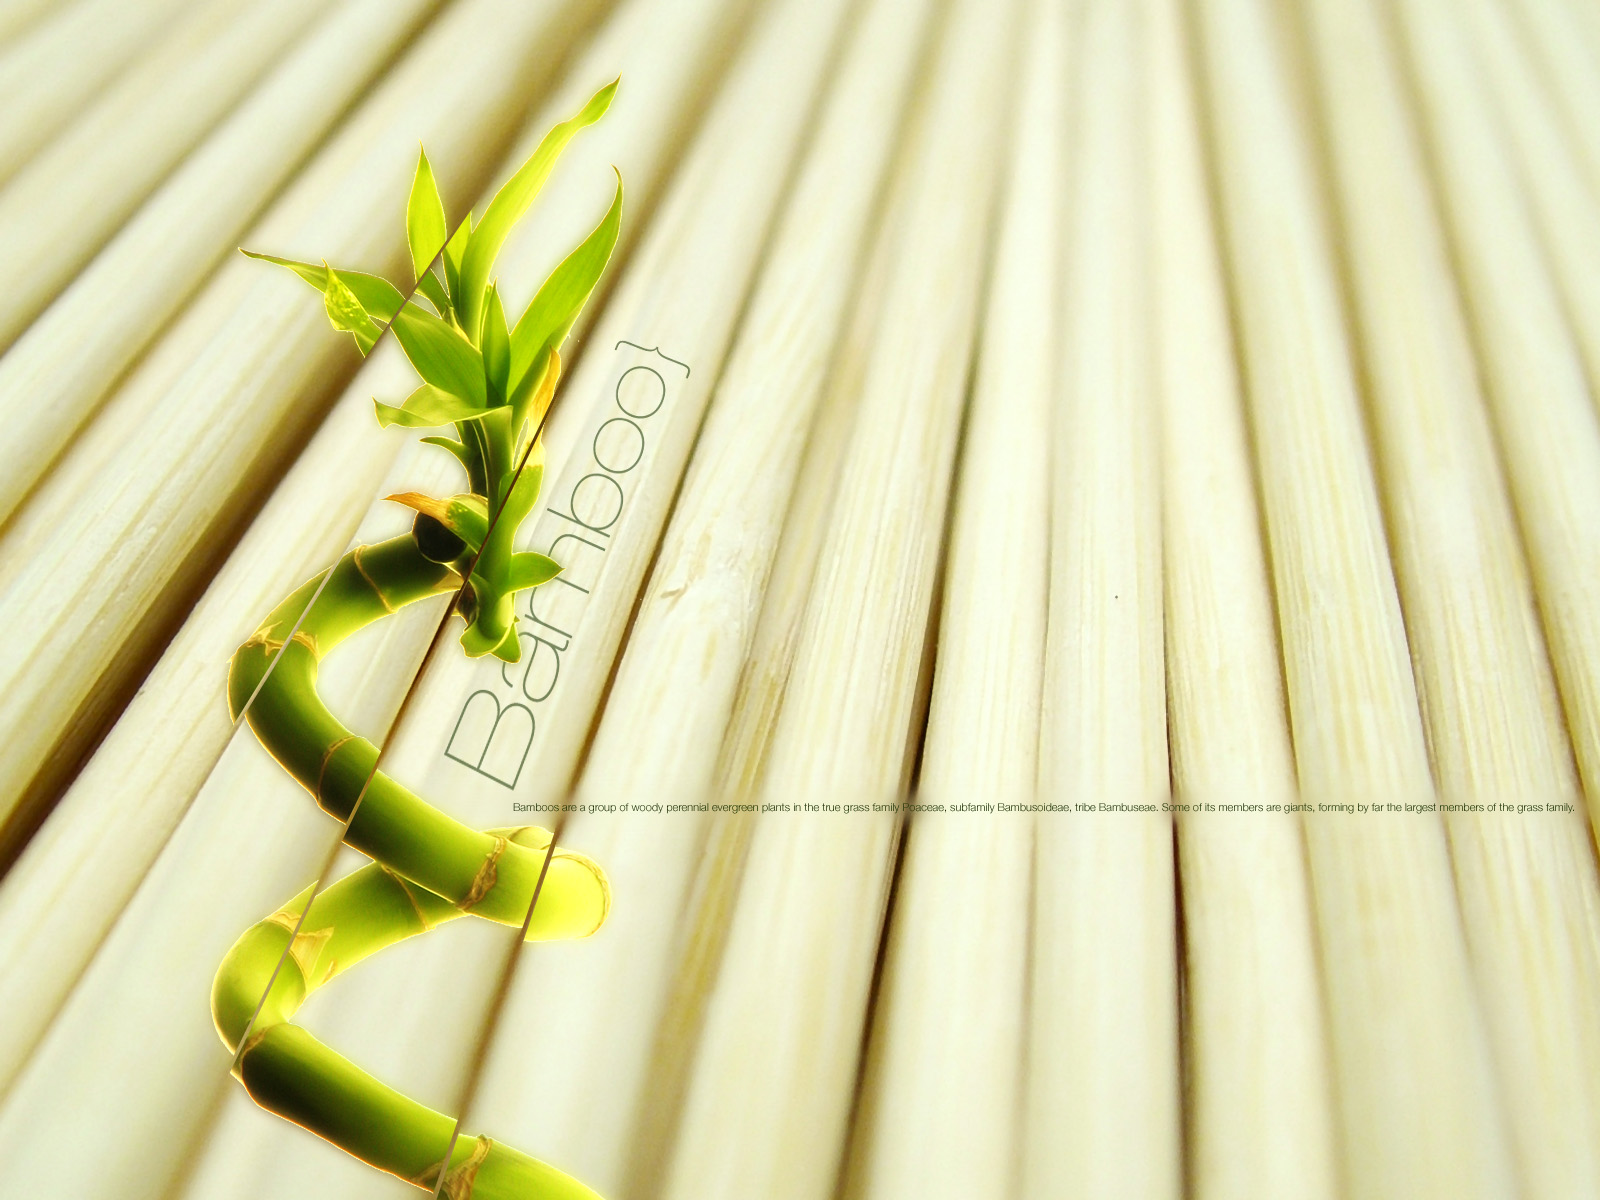 Bamboo Wallpaper Bamboo Textured Wallpaper